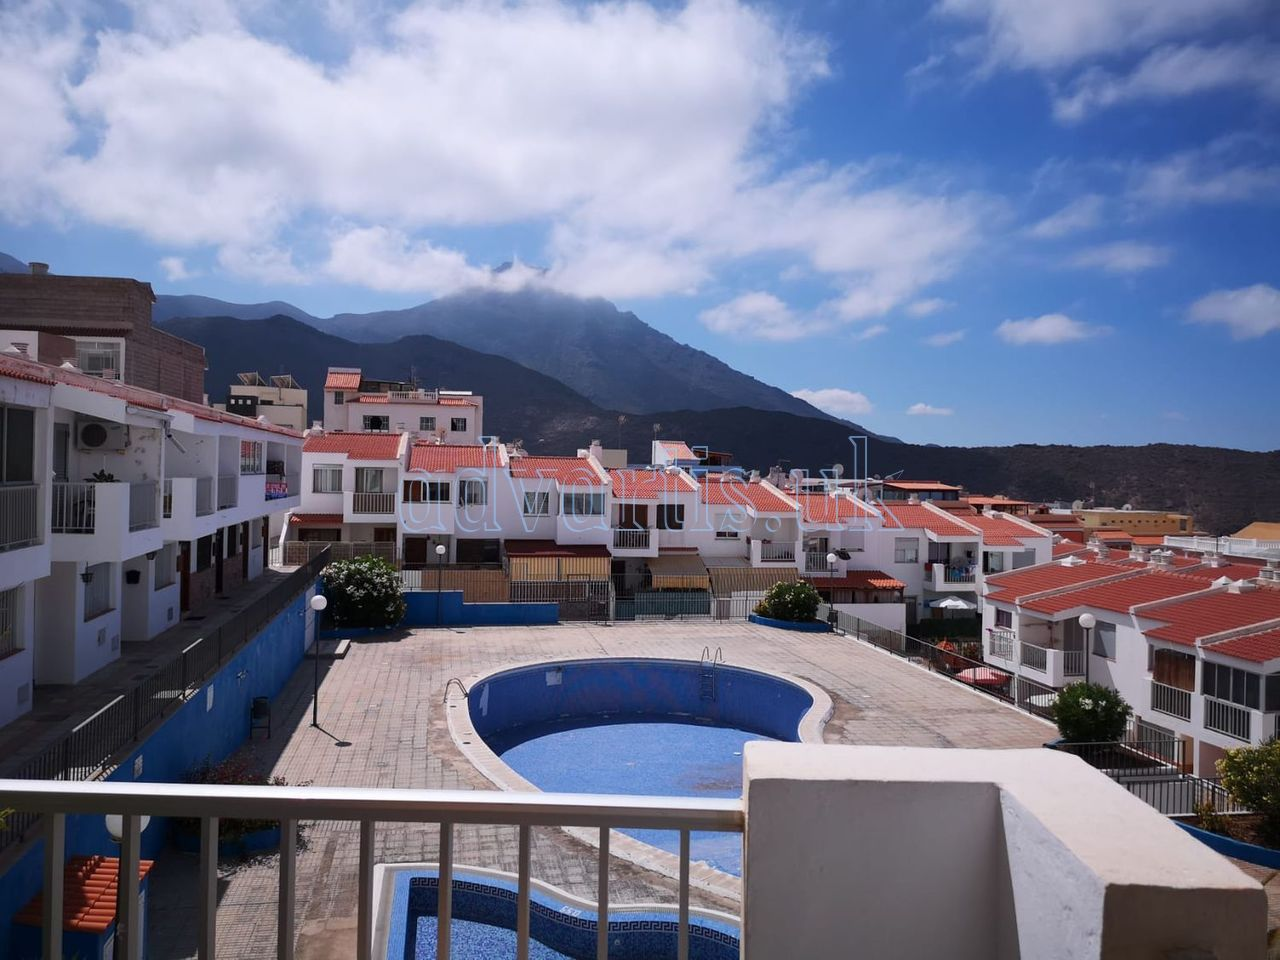 4 bedroom apartment for sale in Adeje, Tenerife